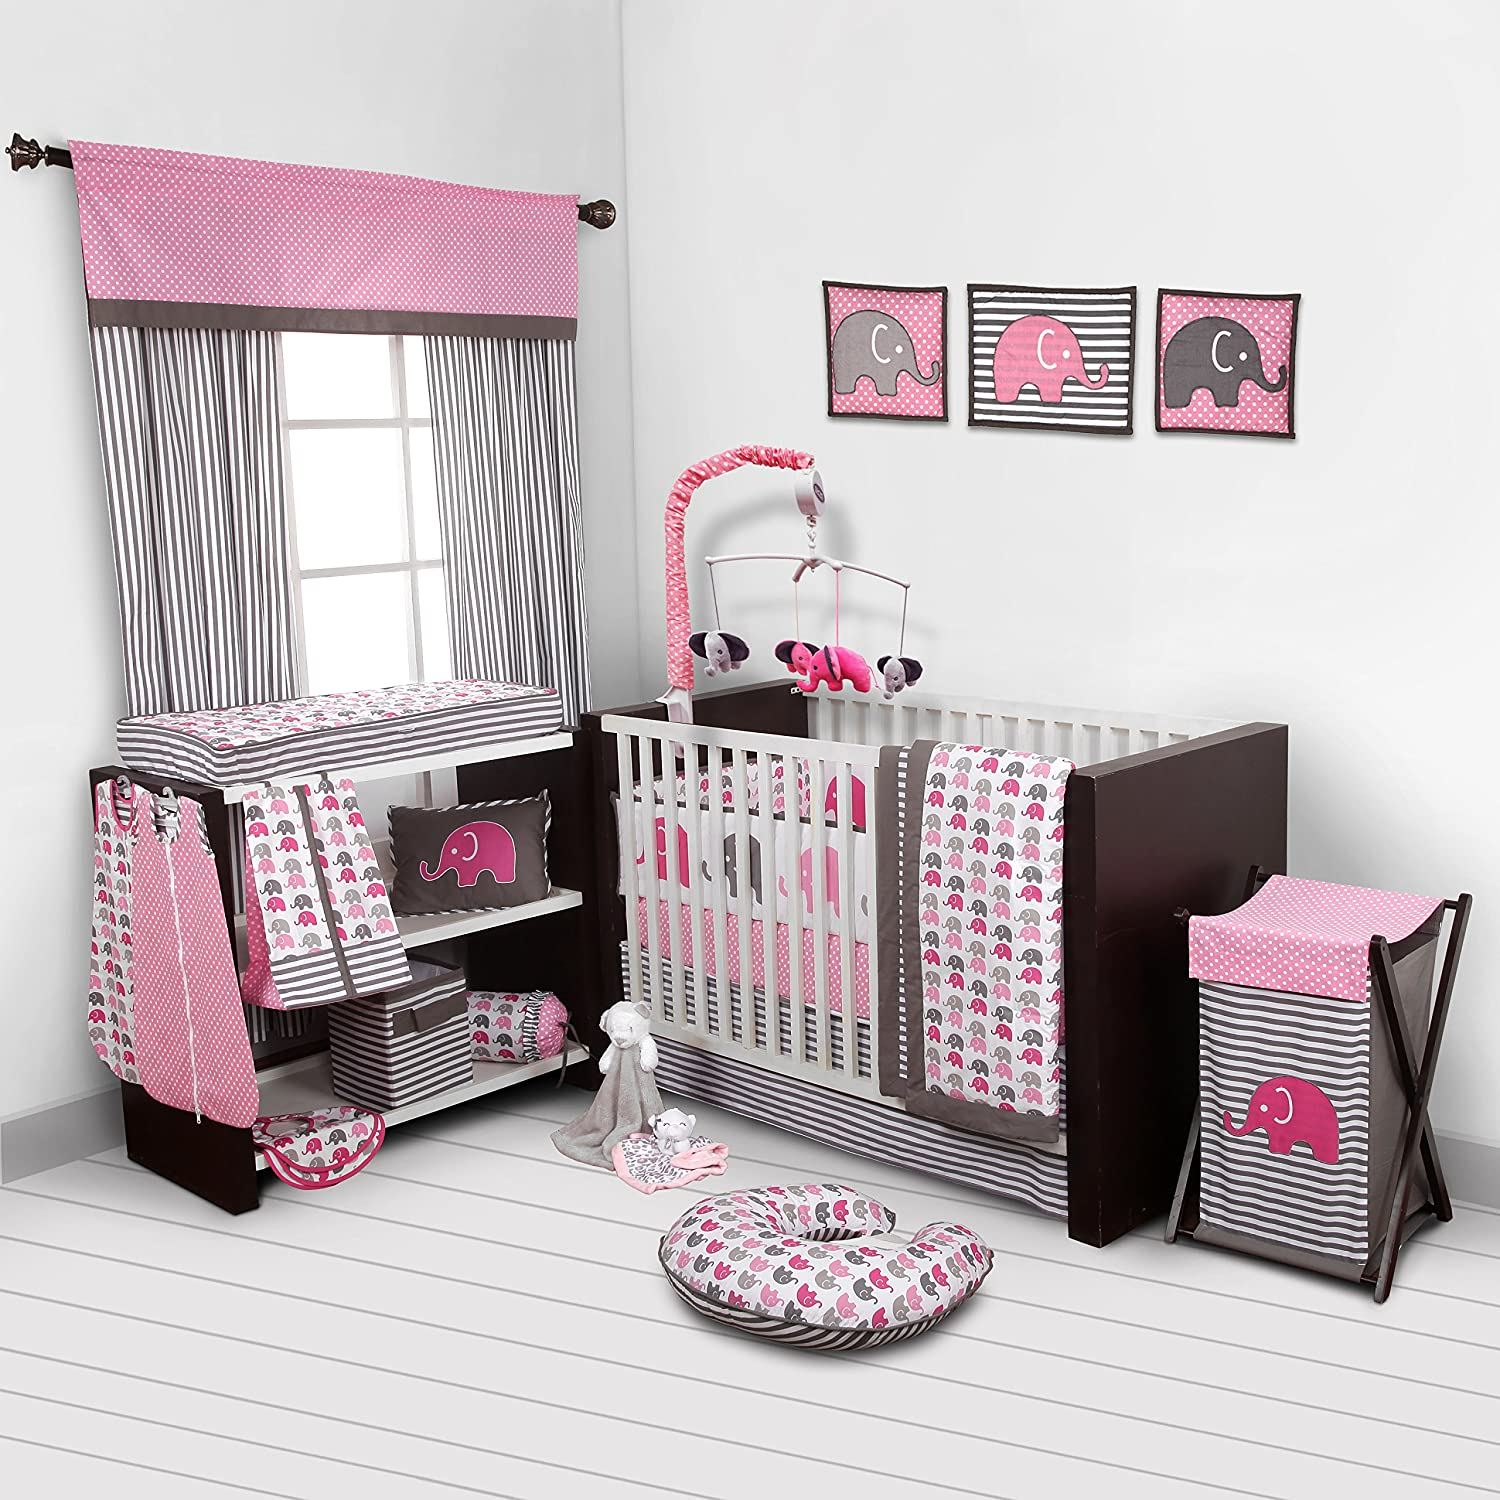 Amazon Elephants Pink Grey 10 pc crib set including Bumper Pad